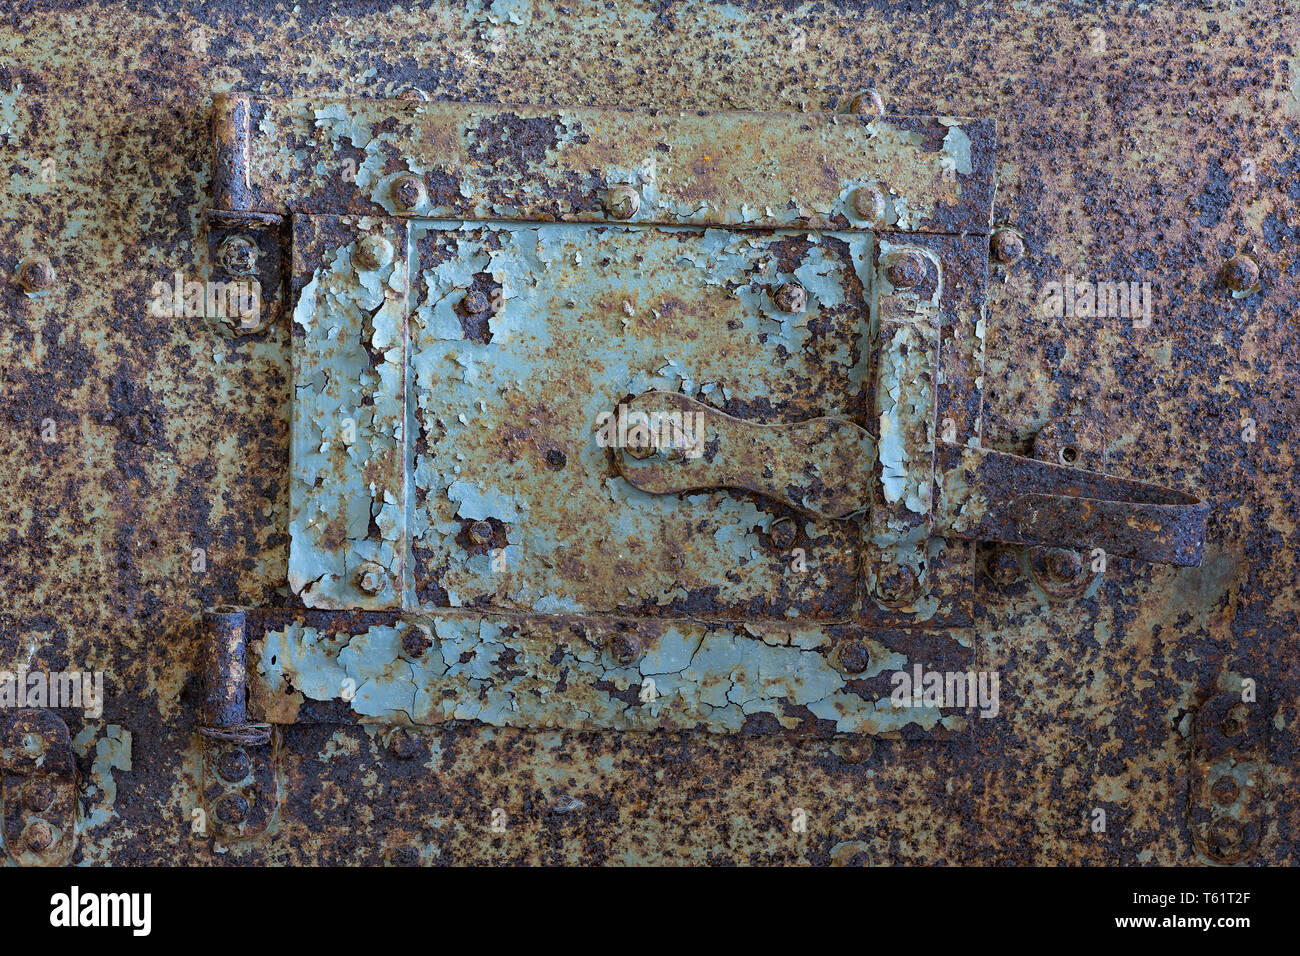 Sheet metal hatch for cleaning soot. Old rusty door with old layers of paint. - Stock Image